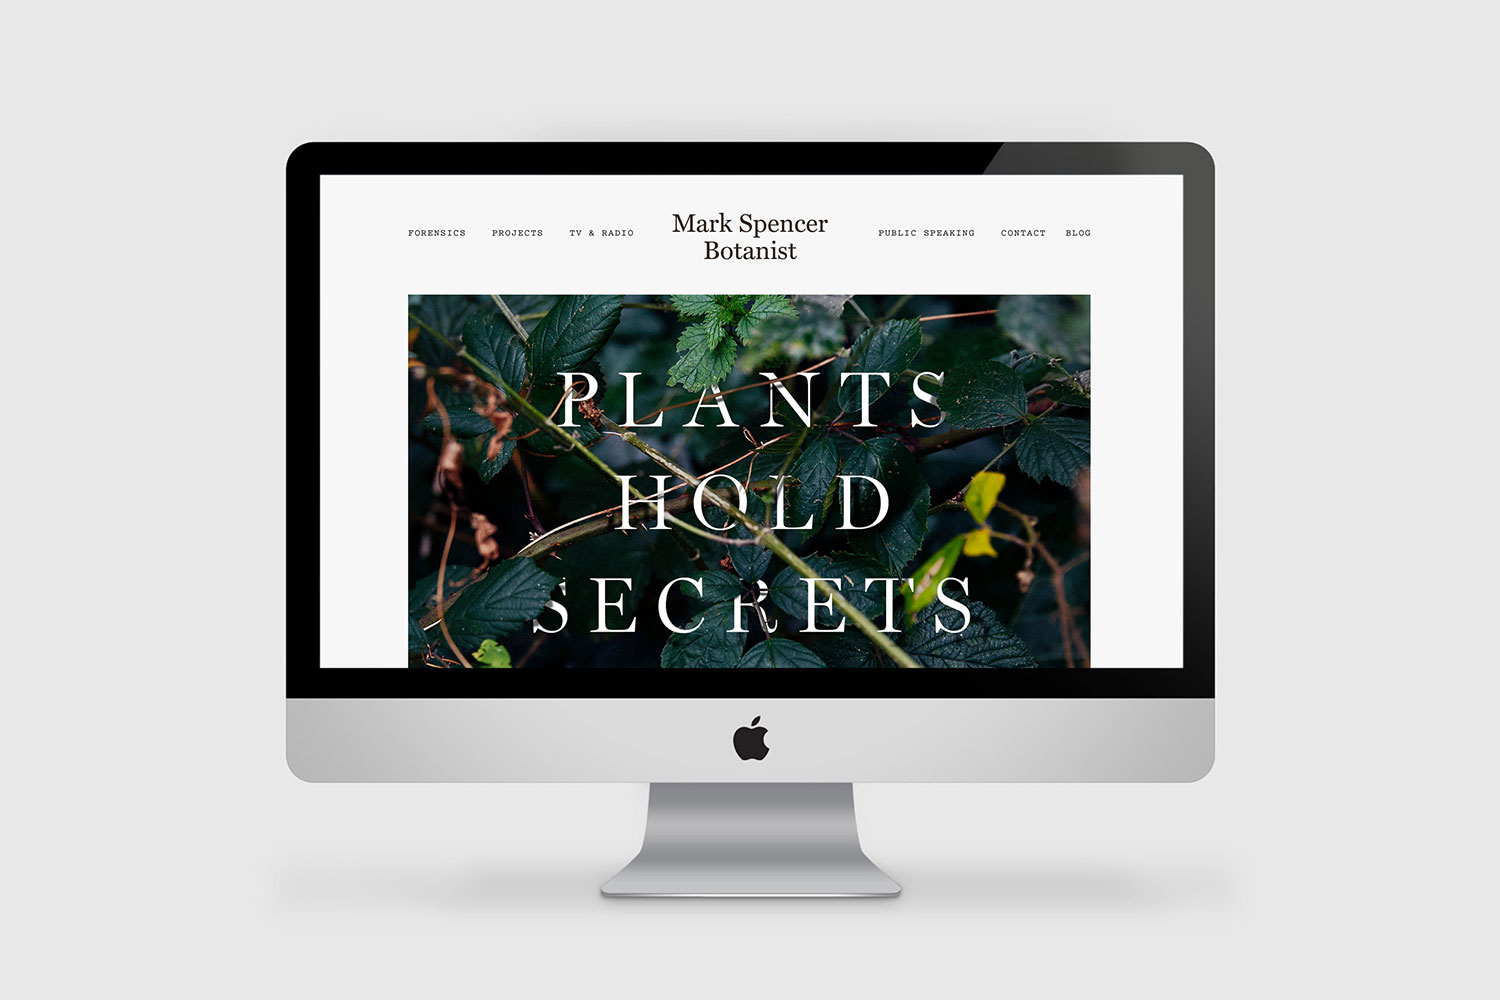 Mark Spencer botanist identity